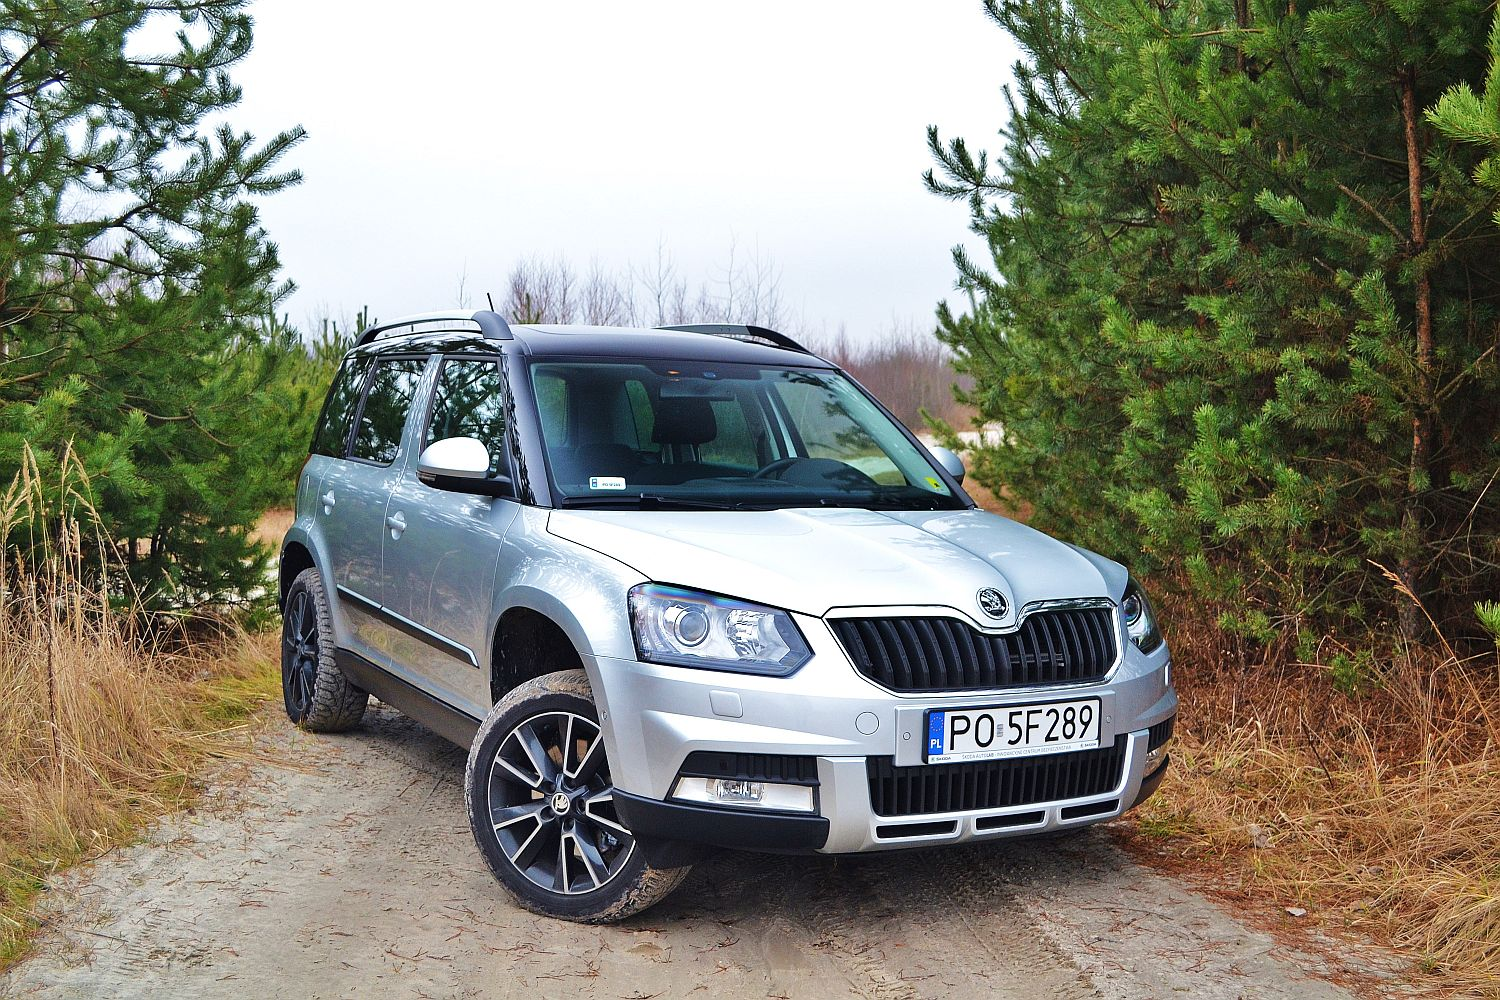 skoda yeti 2 0 tdi 4x4 outdoor praktyczna i przyjemna namasce. Black Bedroom Furniture Sets. Home Design Ideas